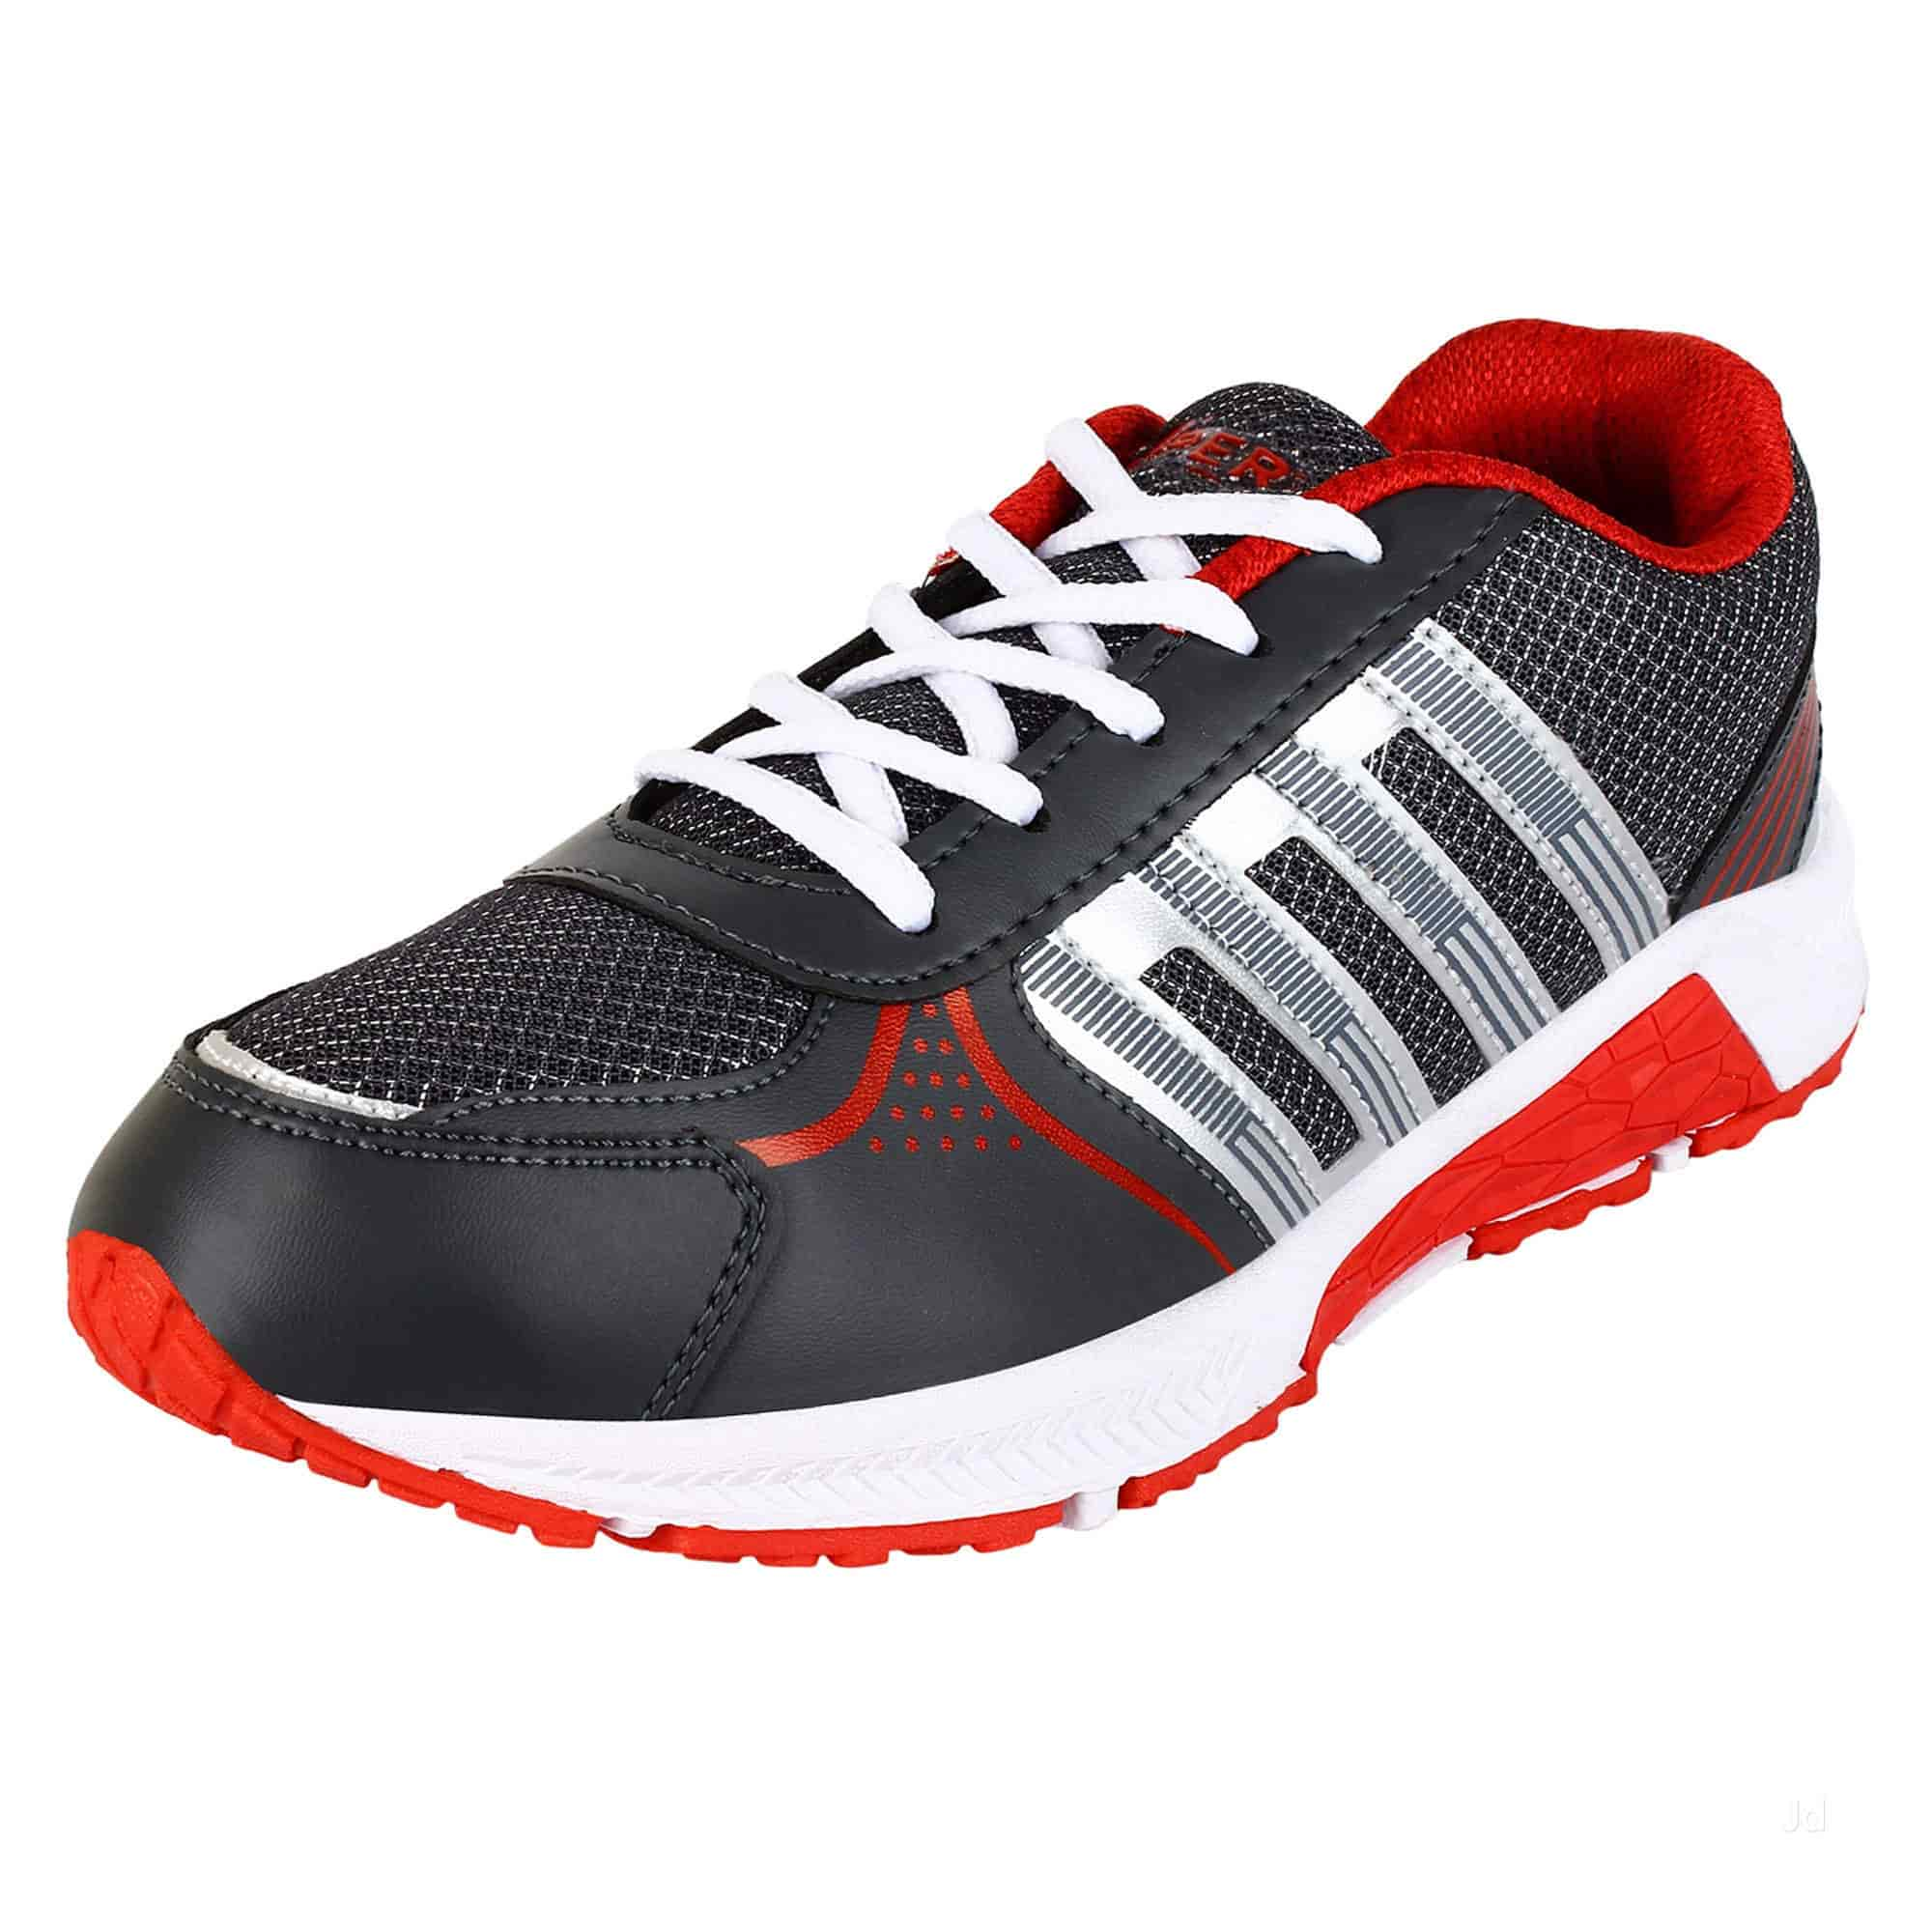 Sport Shoe Manufacturers - 28 Images - Brand Sport Shoe Football Shoes Manufacturer Cheaper ...